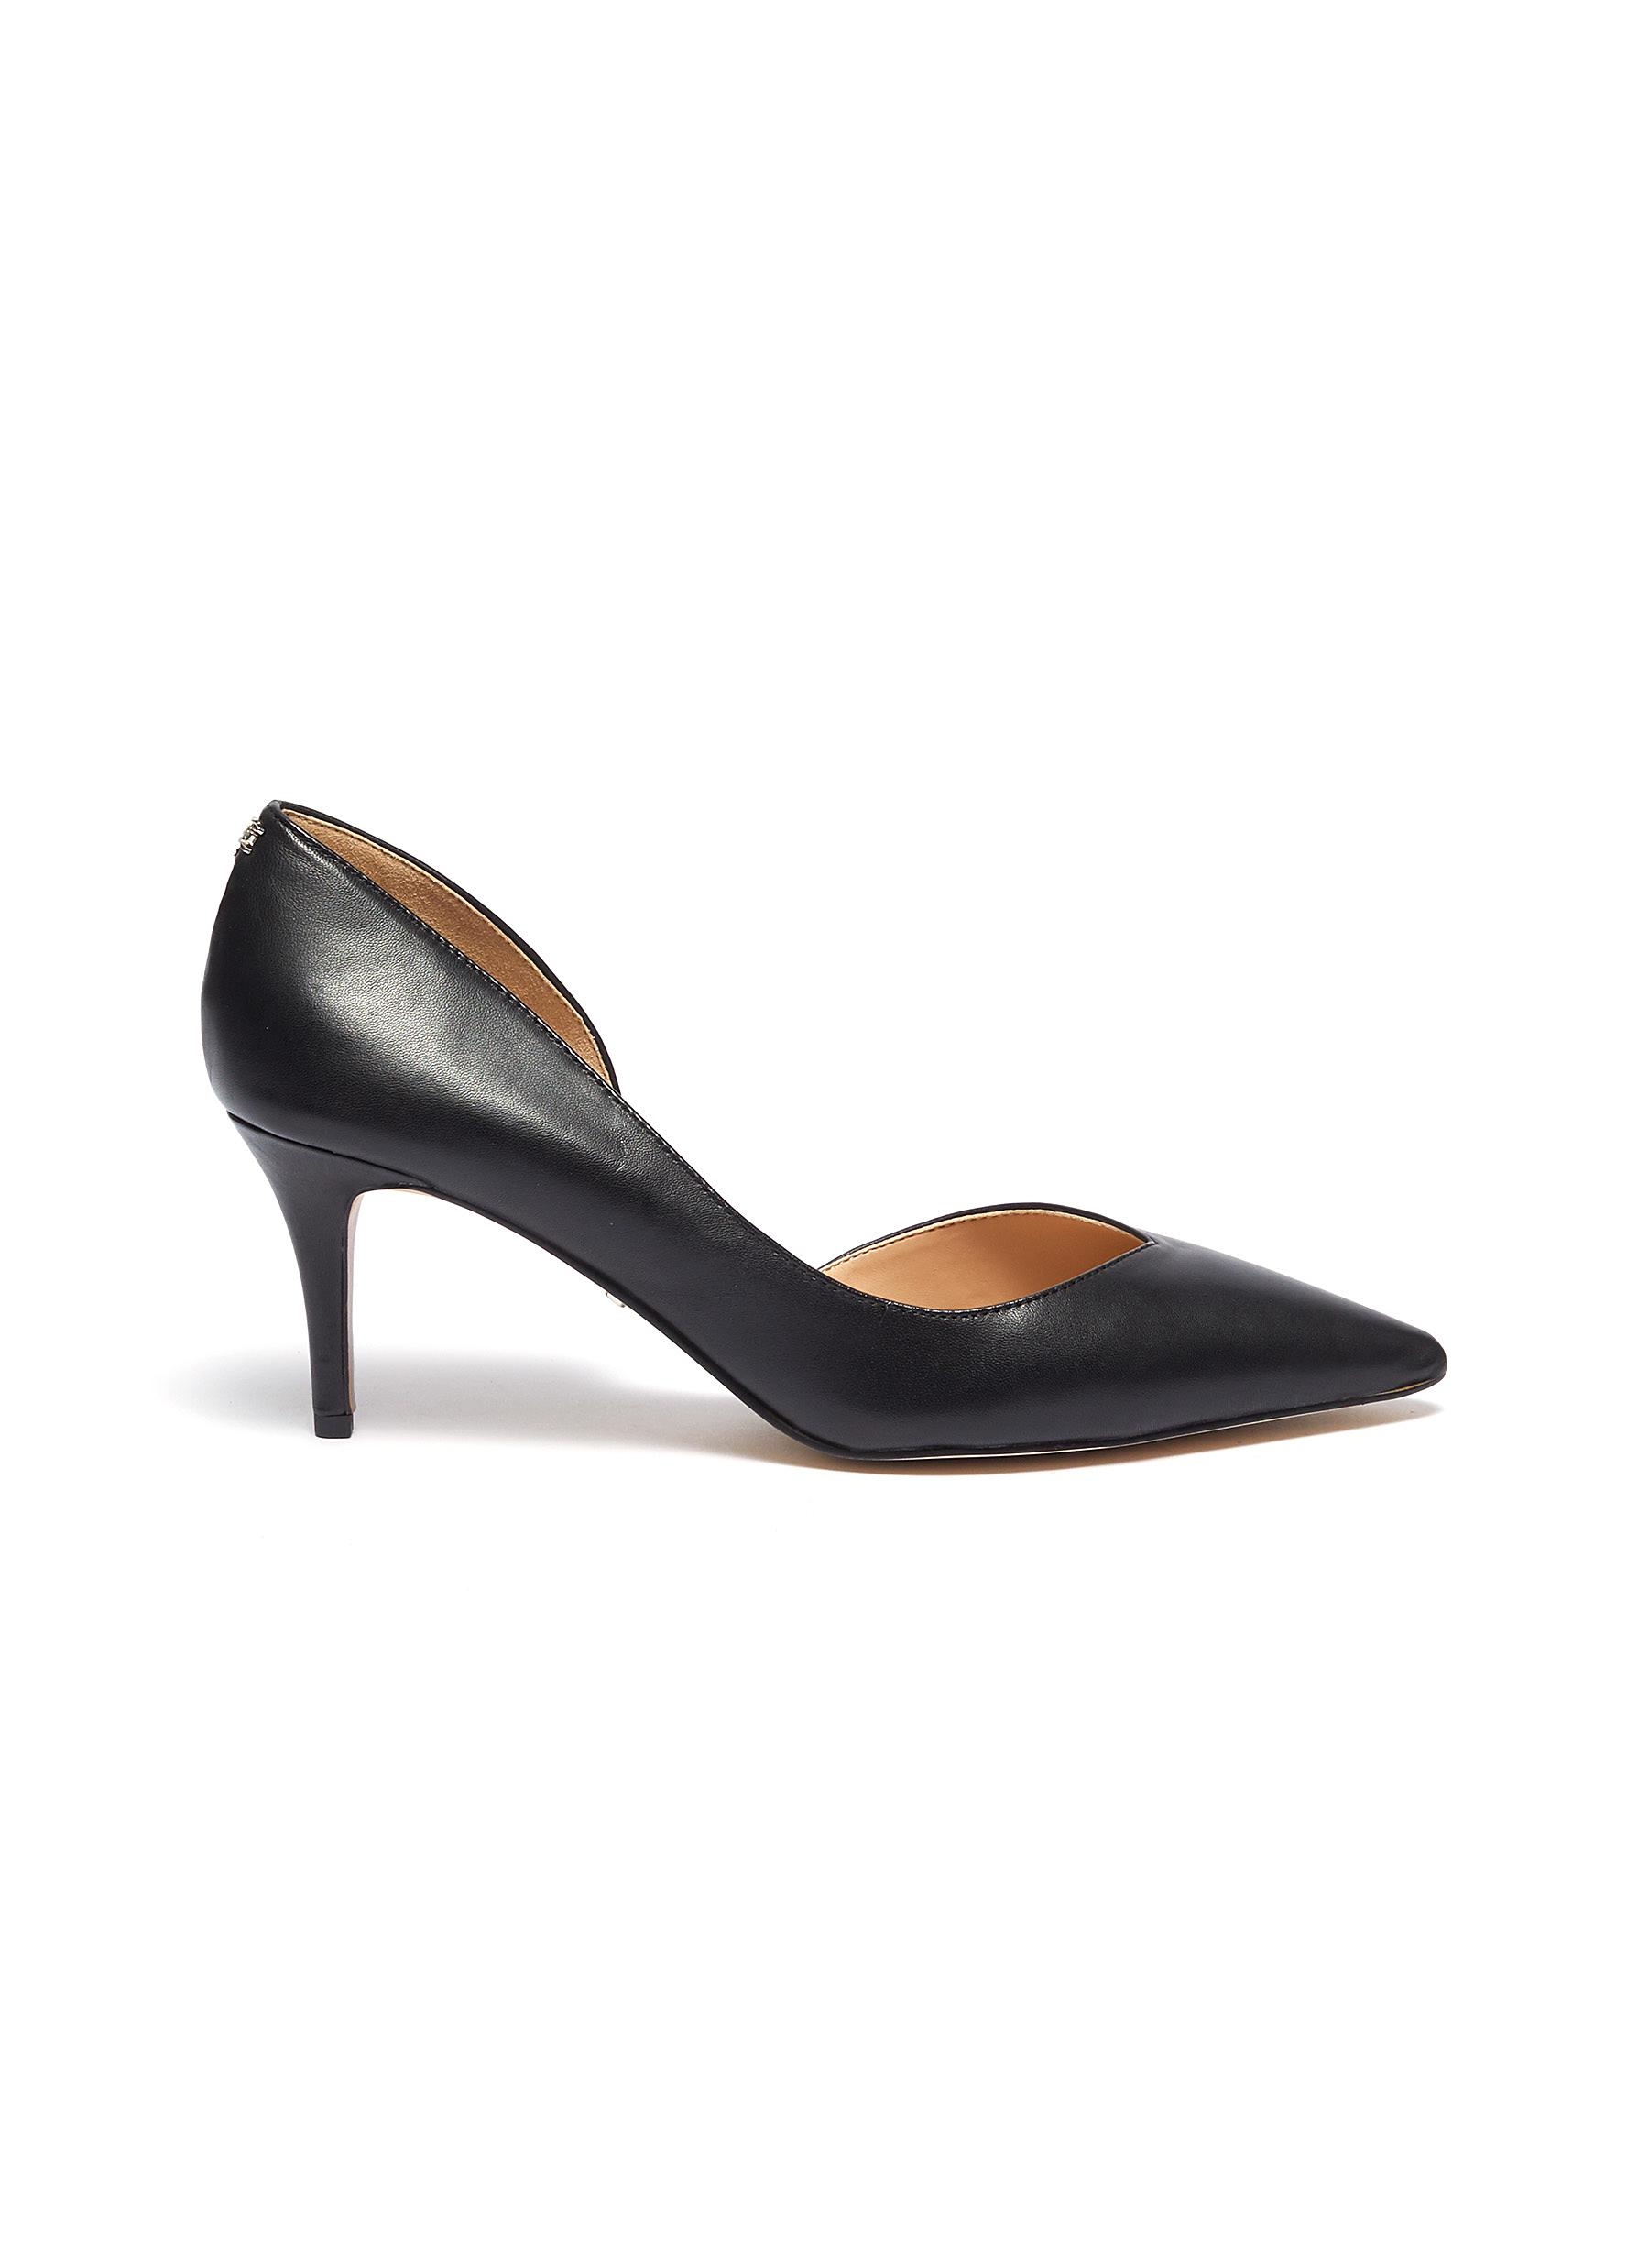 Jari leather dOrsay pumps by Sam Edelman